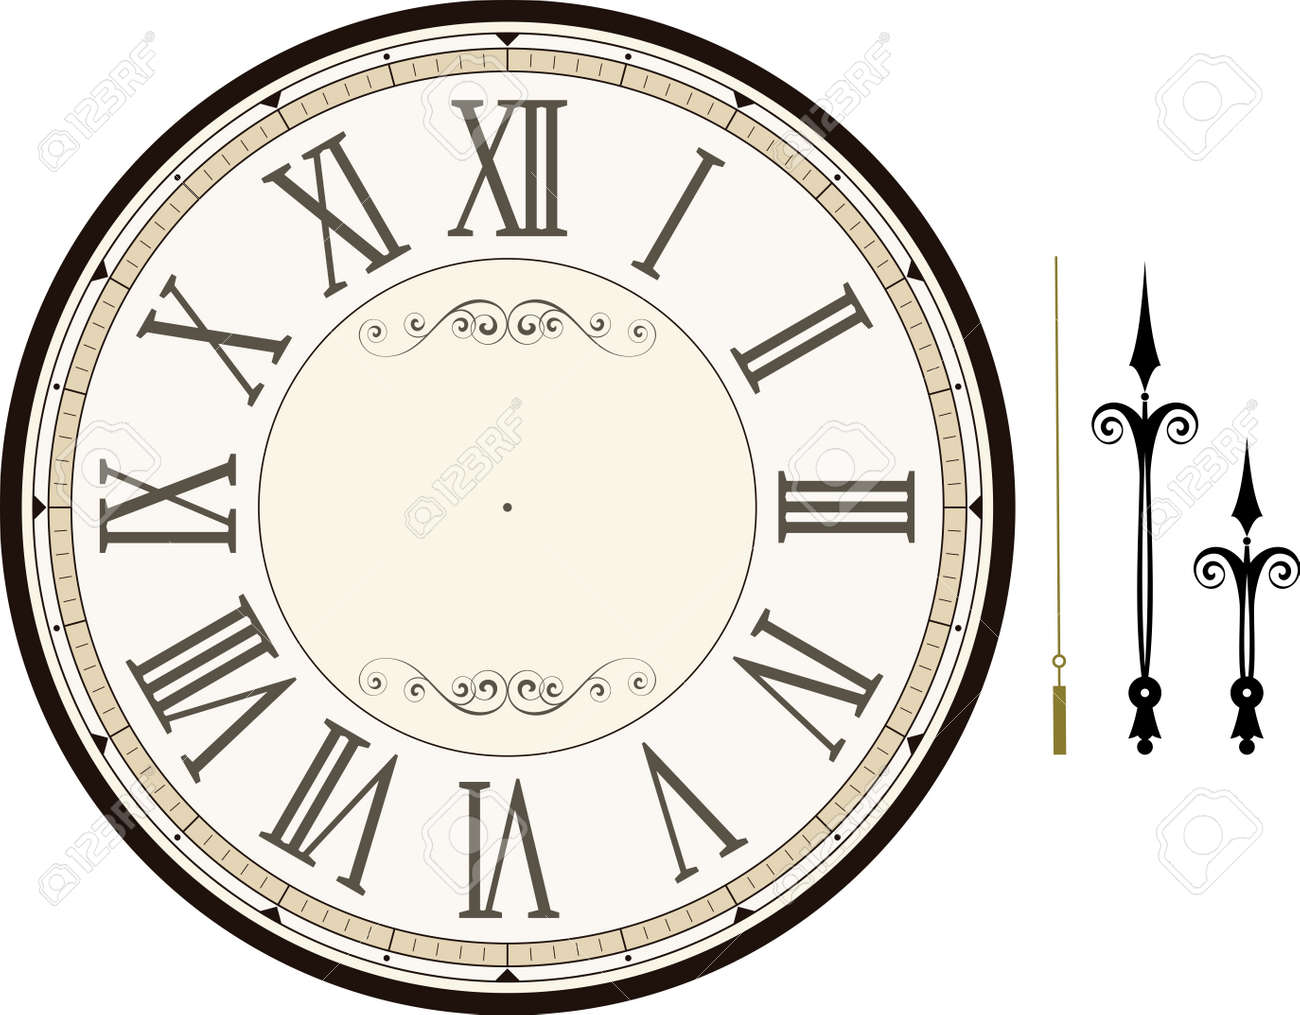 vintage clock face template with hour, minute and second hands